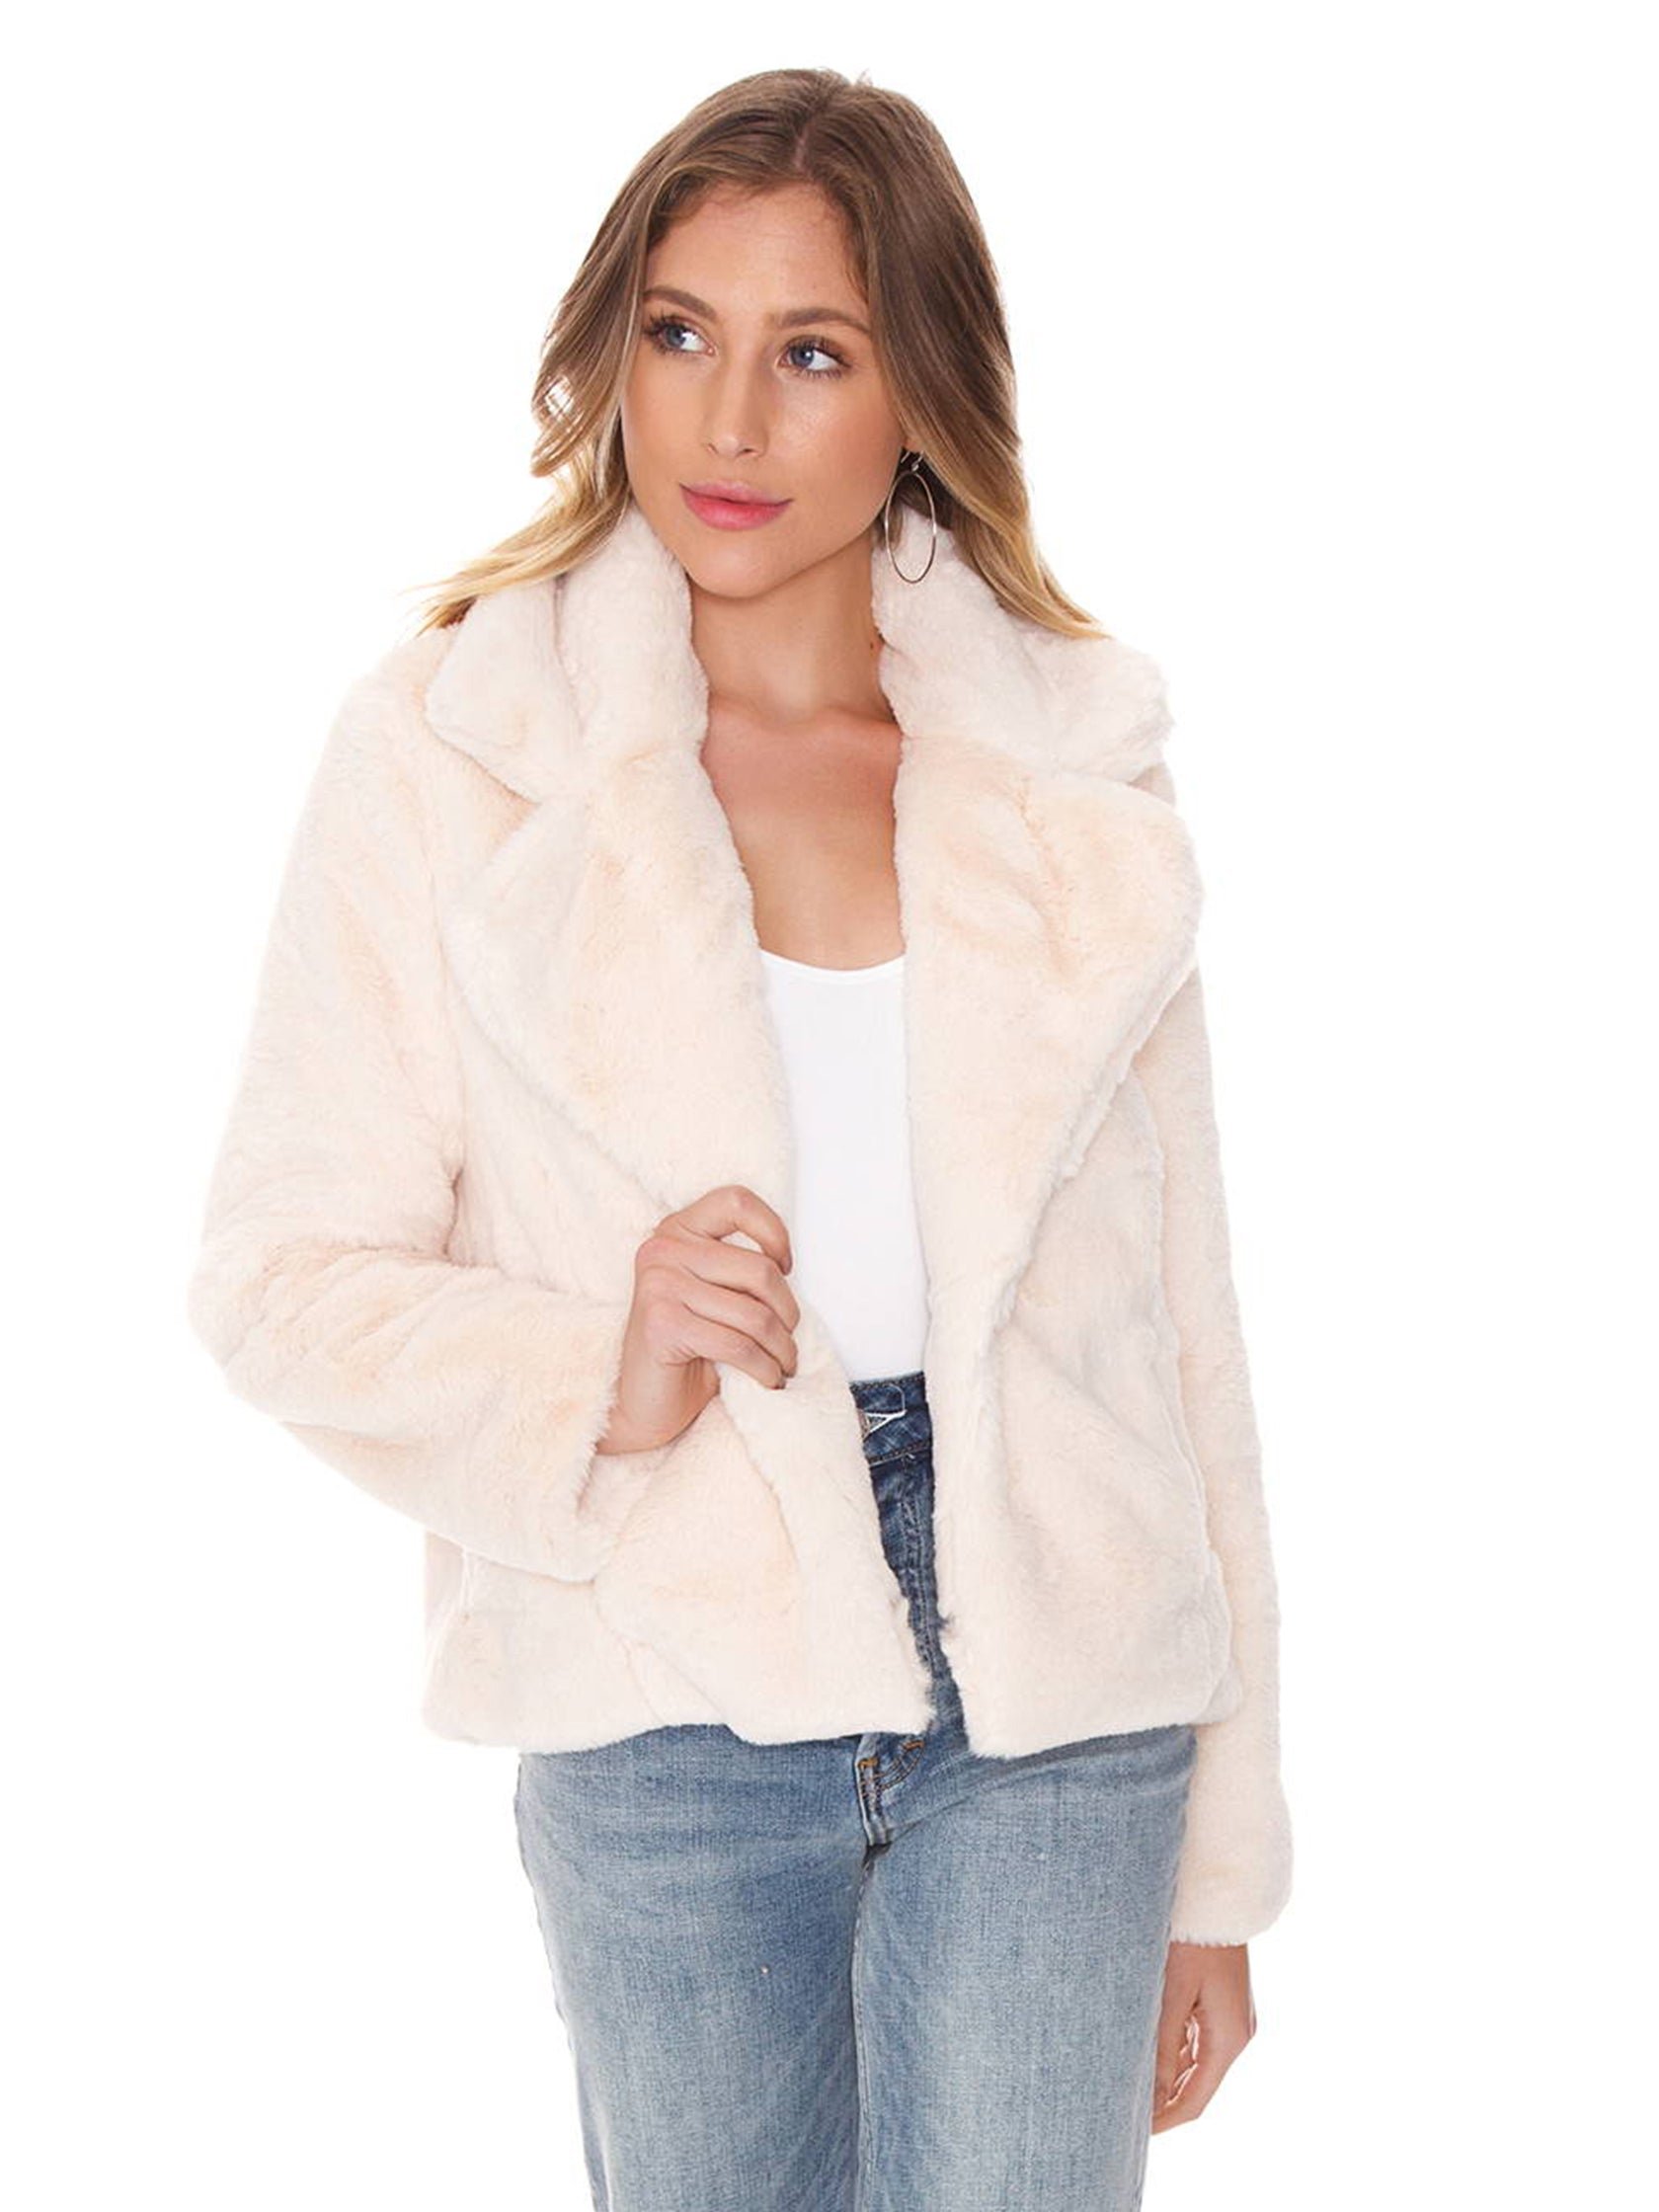 Woman wearing a jacket rental from FashionPass called Izzy Faux Fur Jacket